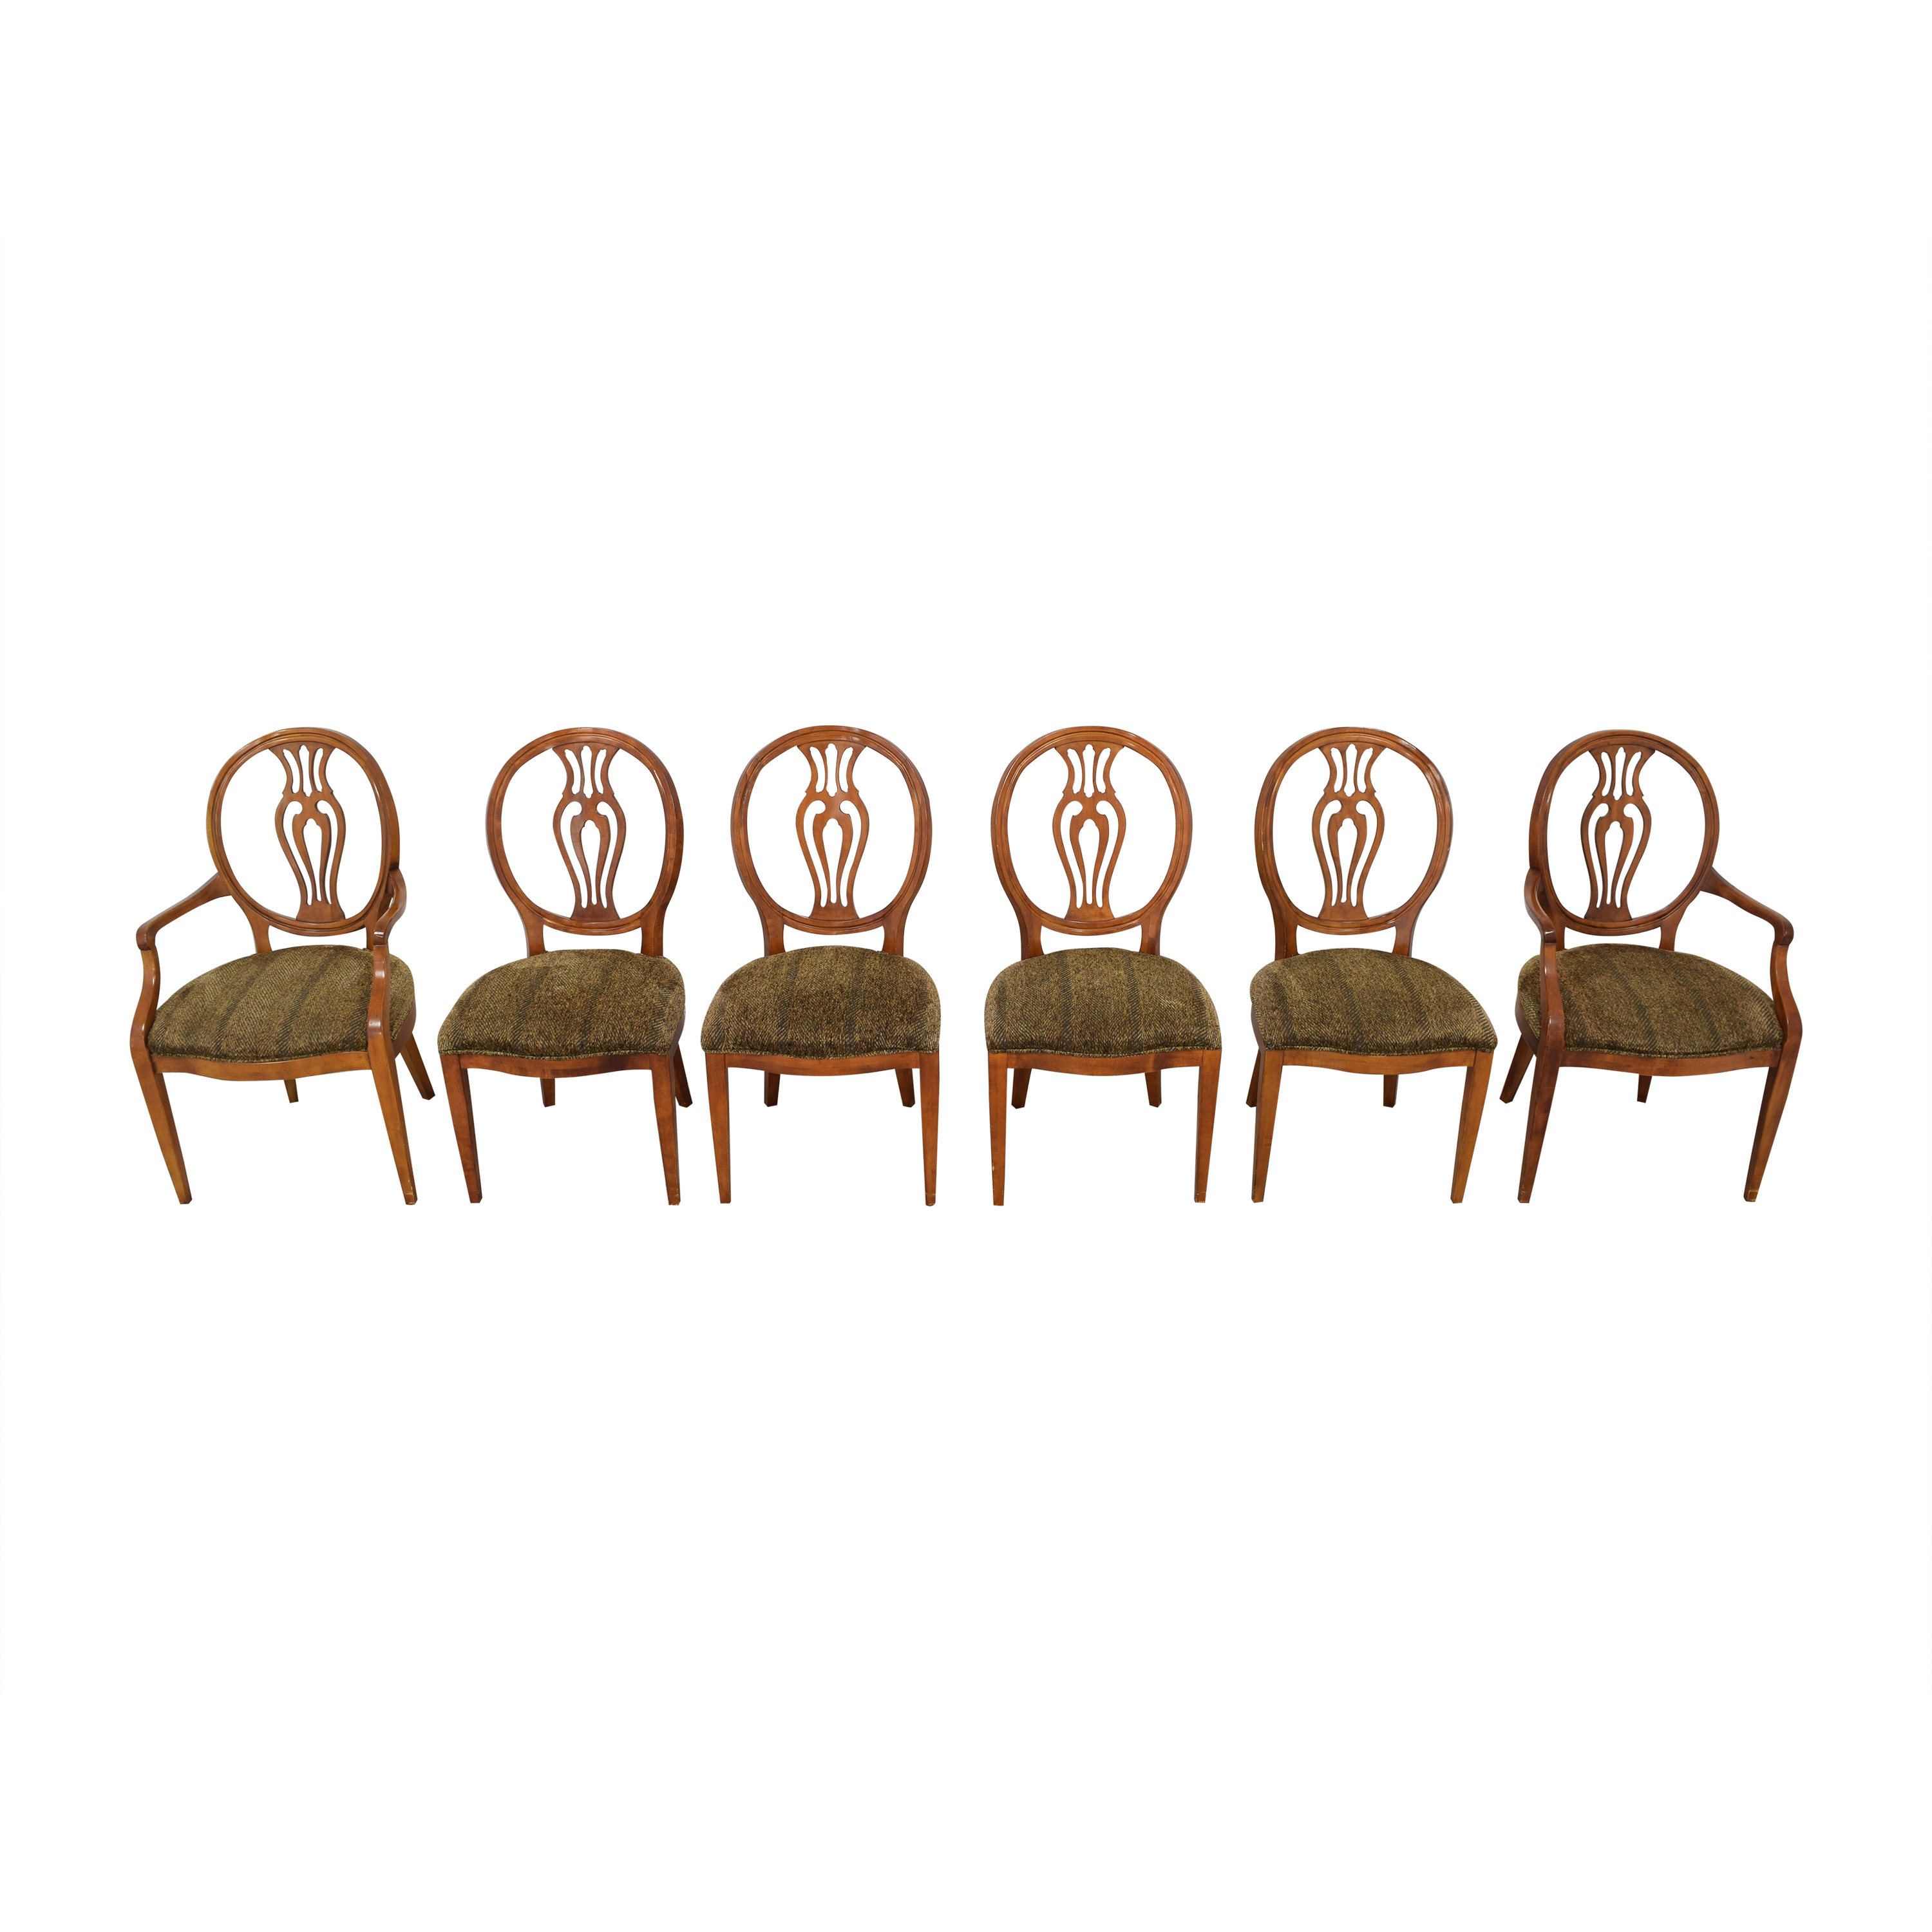 Henredon Furniture Herendon French Pierce Balloon Back Dining Chairs price